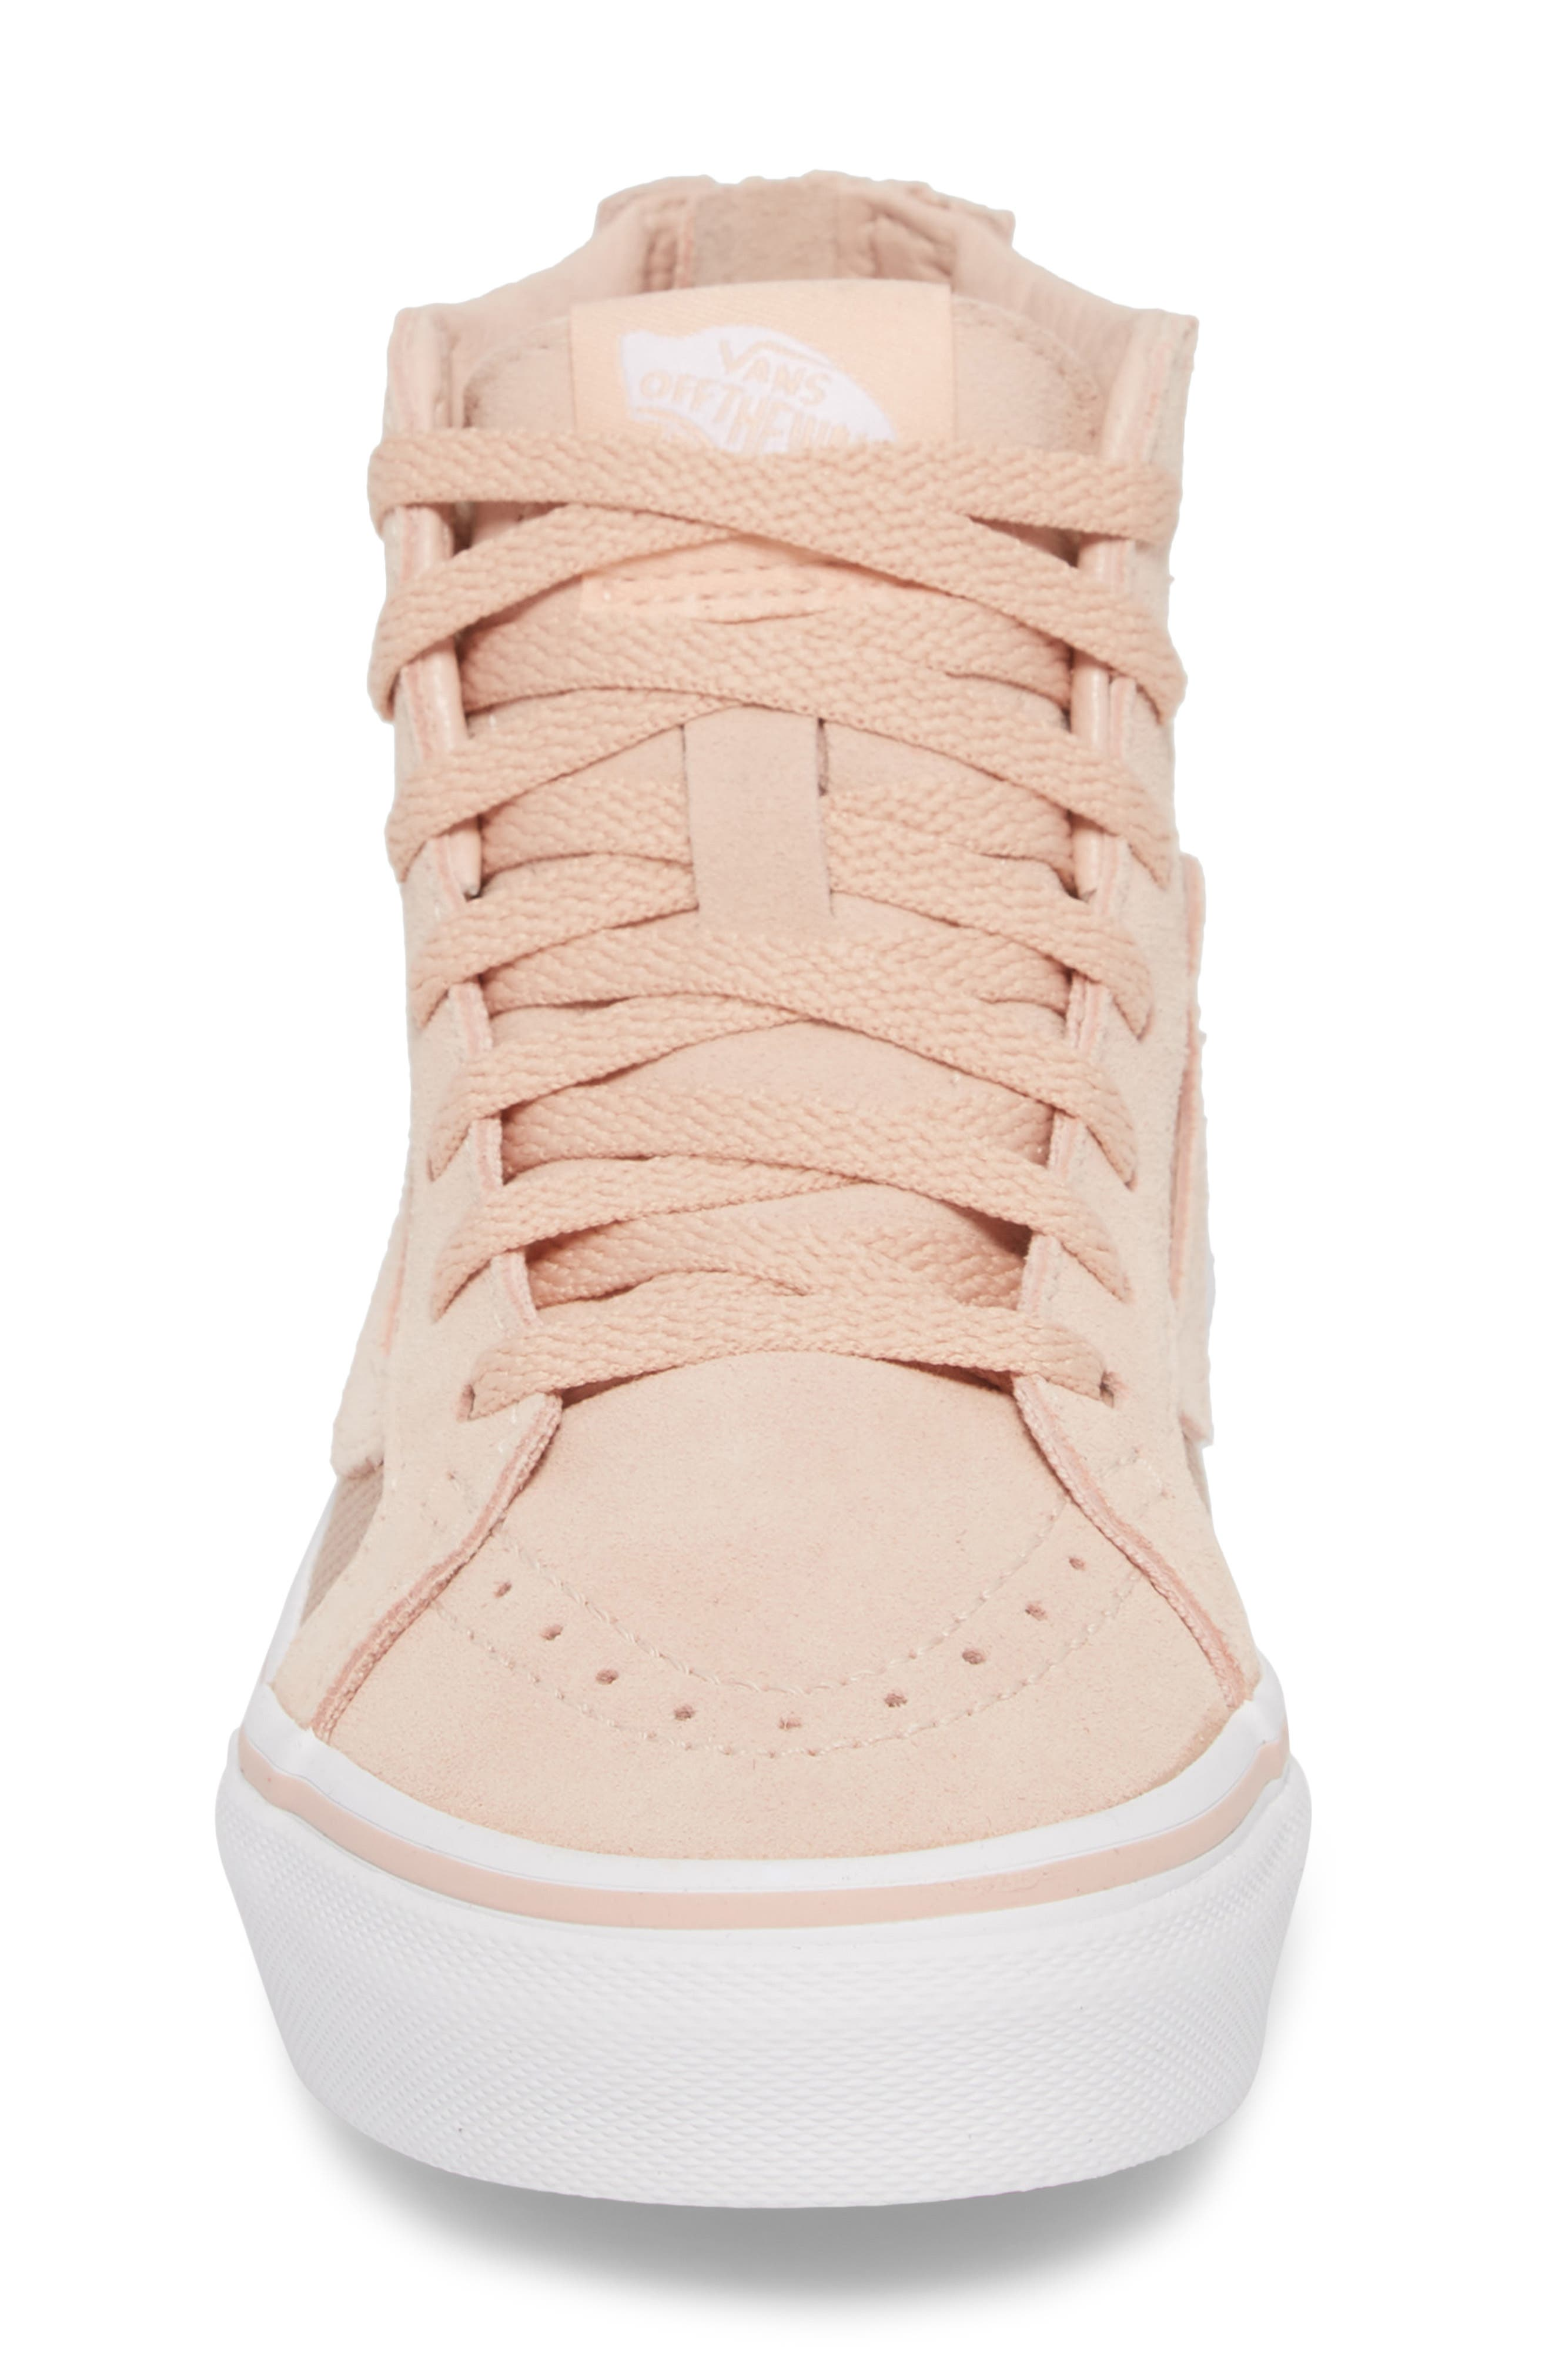 SK8-Hi Zip Sneaker,                             Alternate thumbnail 4, color,                             ROSE GOLD SUEDE LEATHER